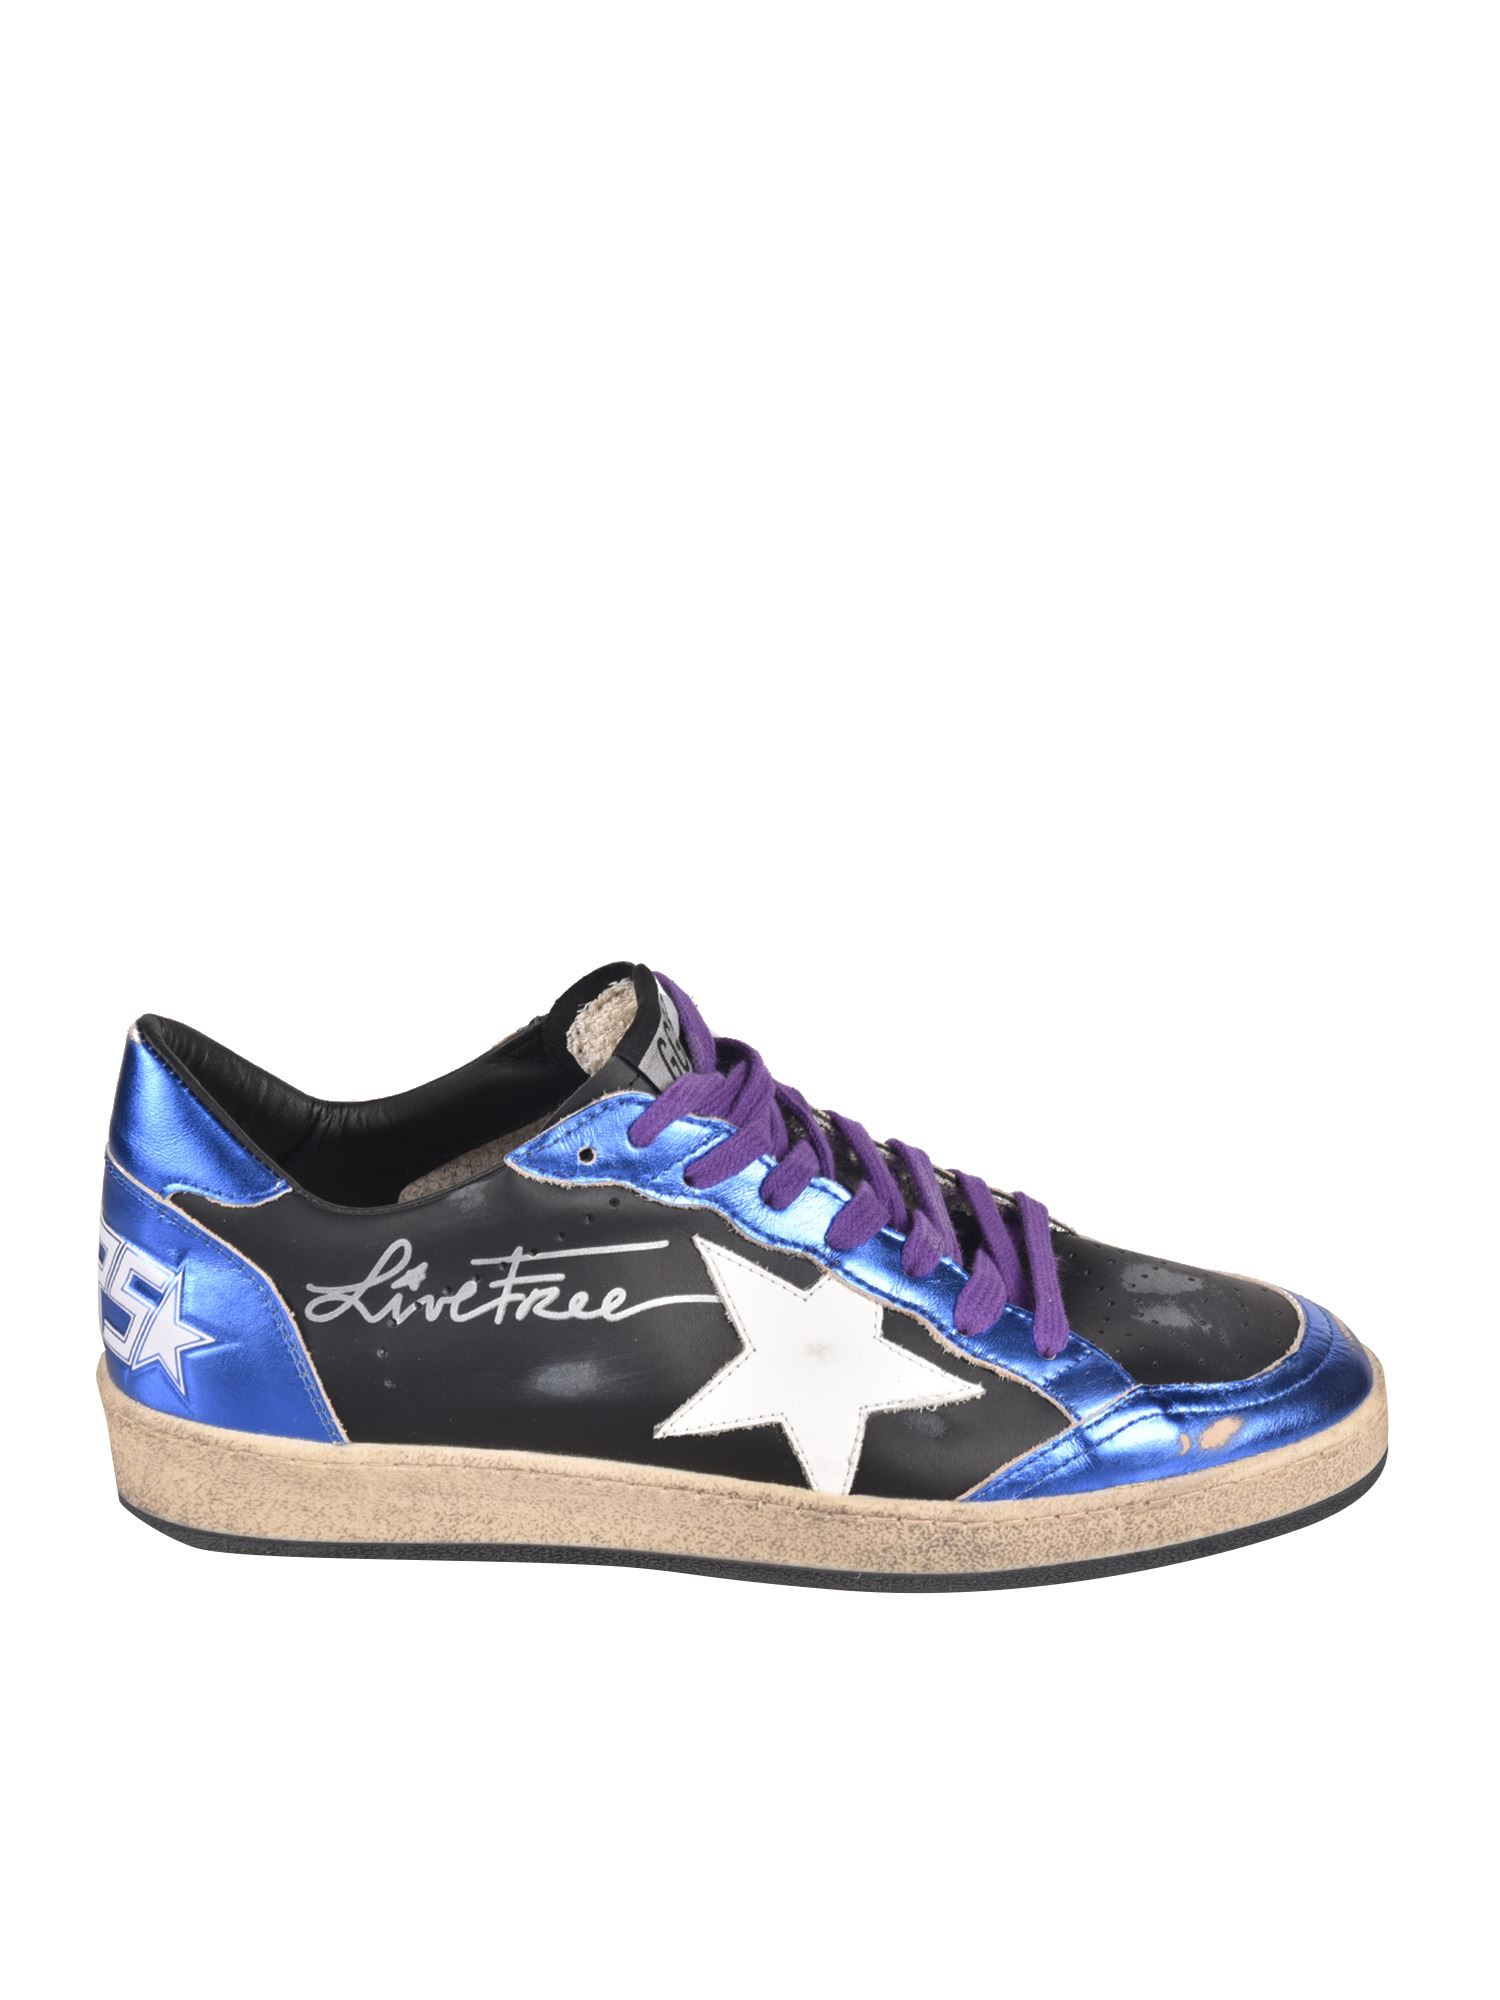 Golden Goose BALL STAR SNEAKERS IN BLACK AND BLUE